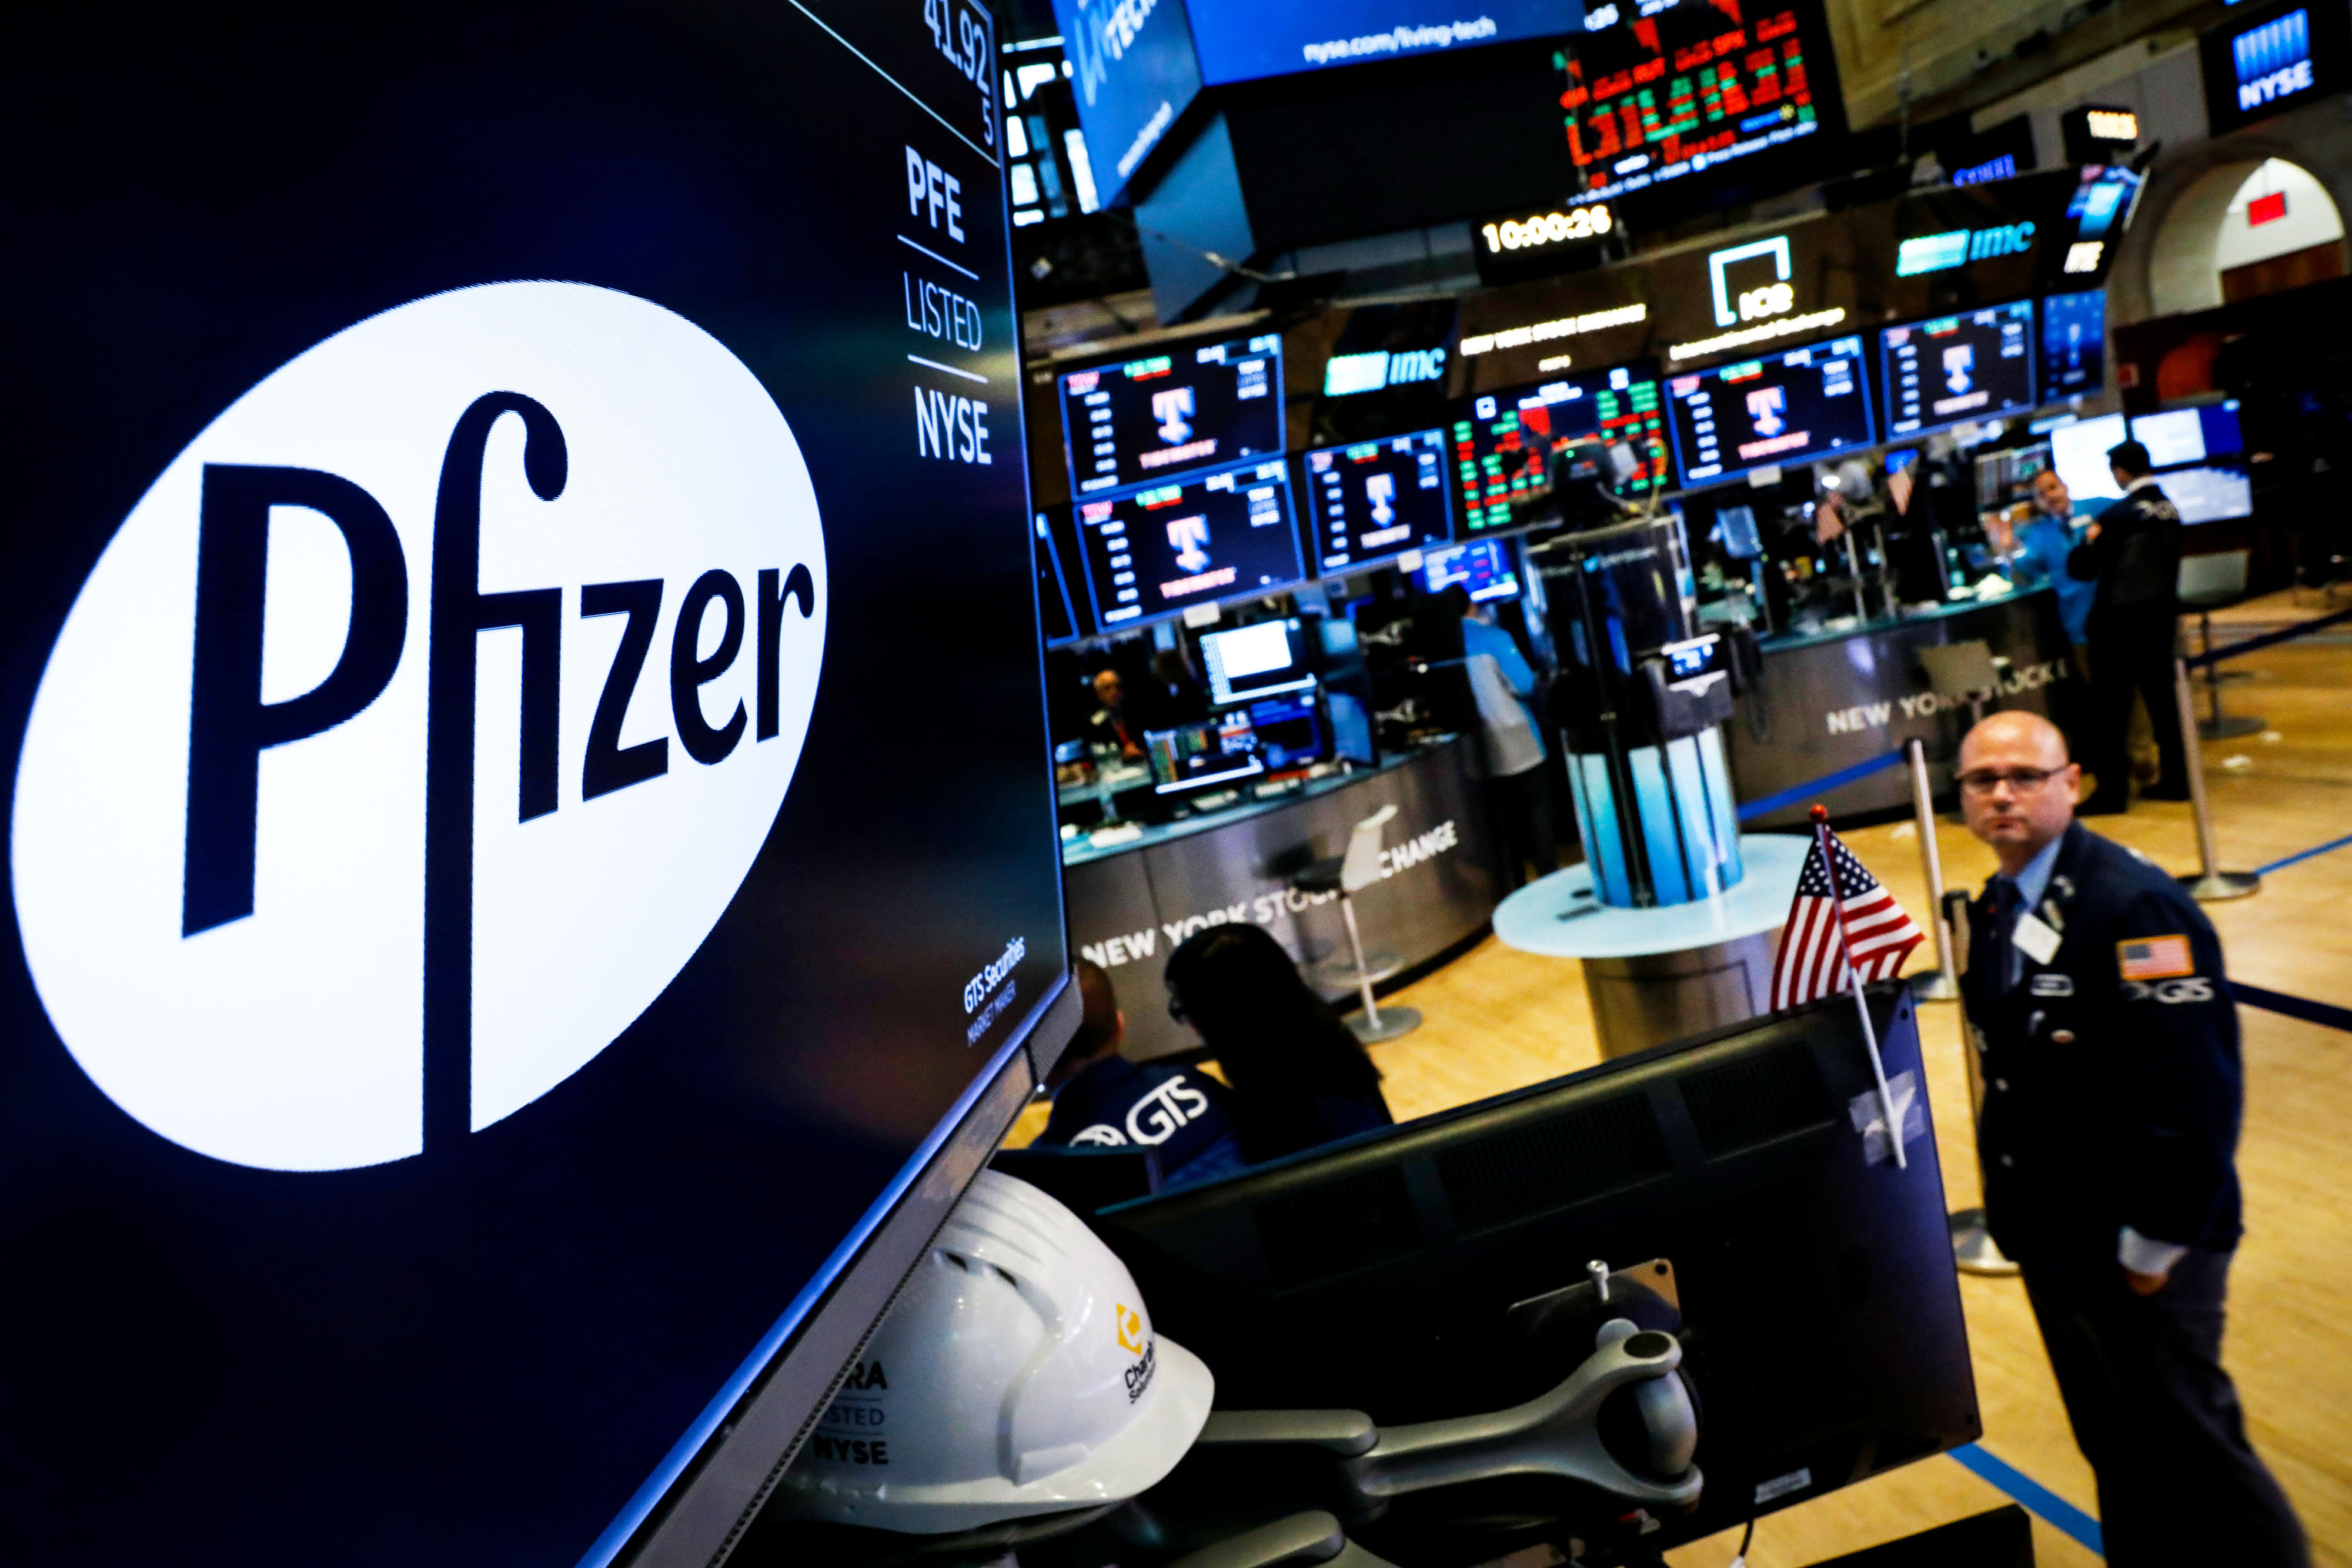 Stocks making the biggest moves midday: Pfizer, Chipotle, Gap, Target, Delta, Carnival & more